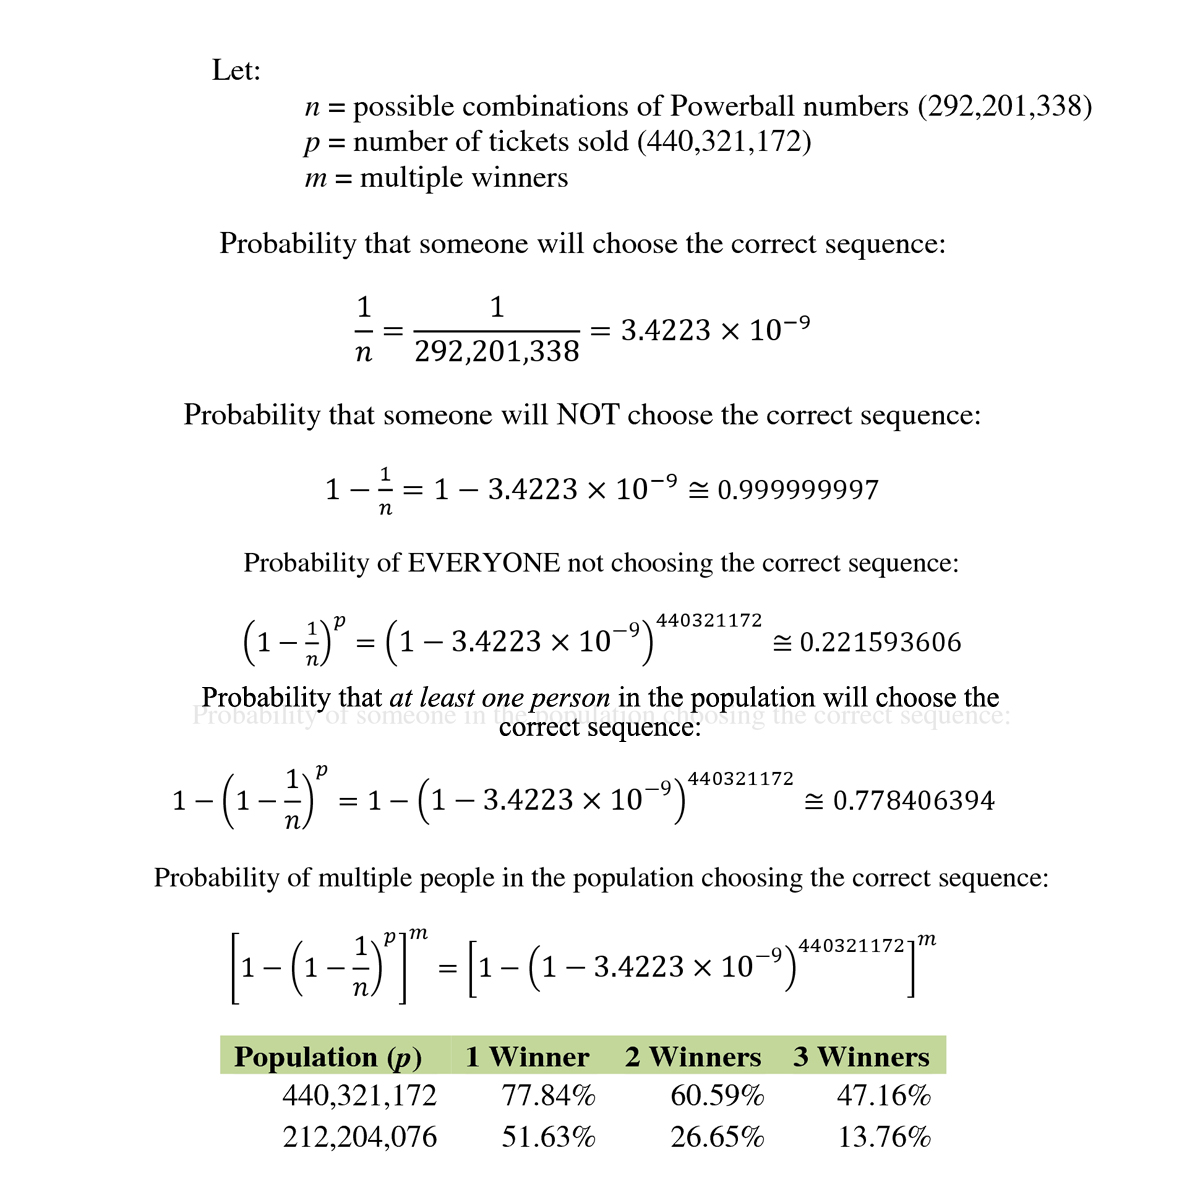 worksheet Probability On Numbers the impractical catholic ponderings on powerball probability numbers i used here were taken from jan 9 2016 drawing where over 440 million tickets sold number und